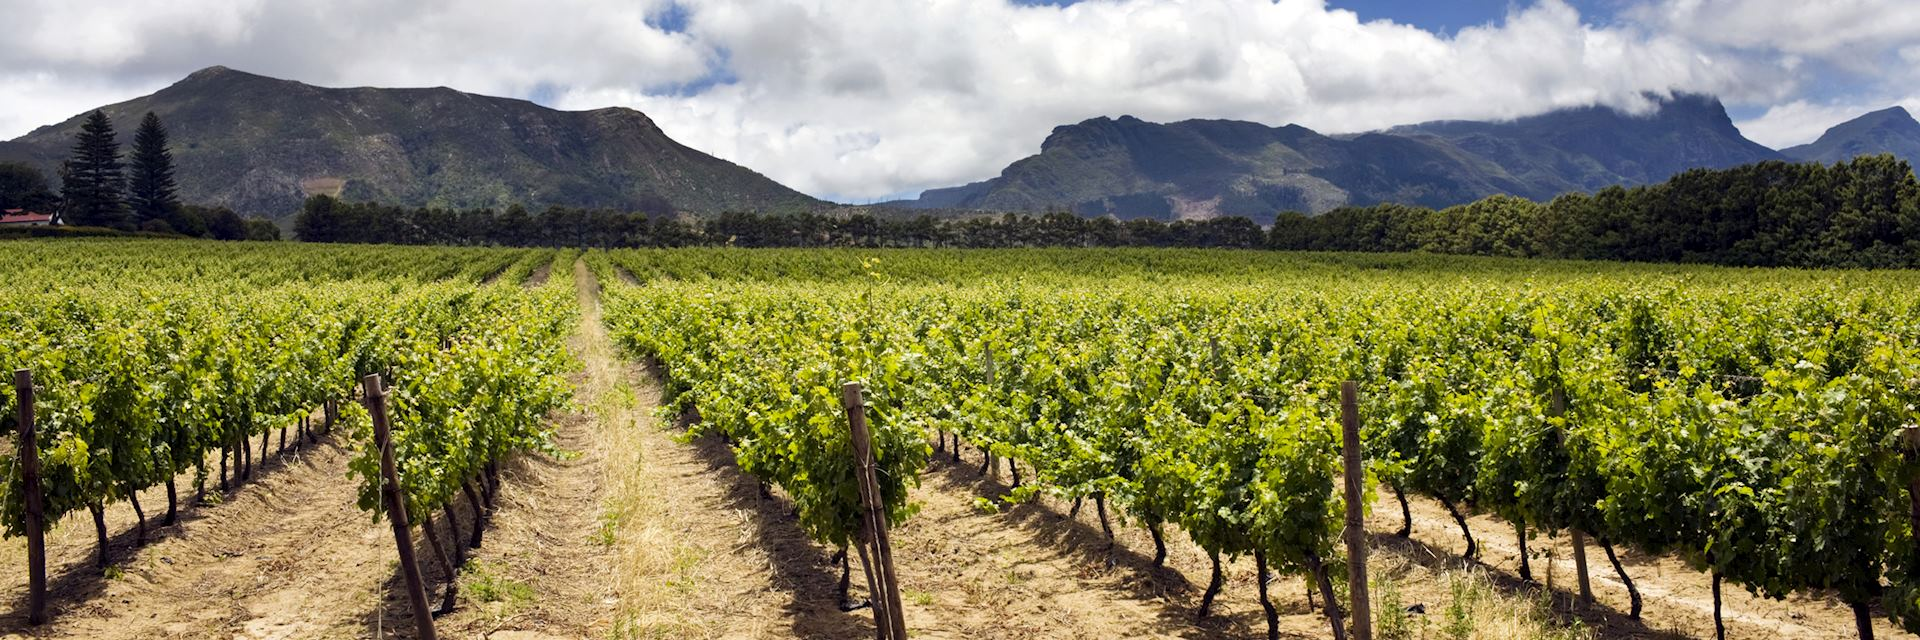 Vineyards, Cape Region